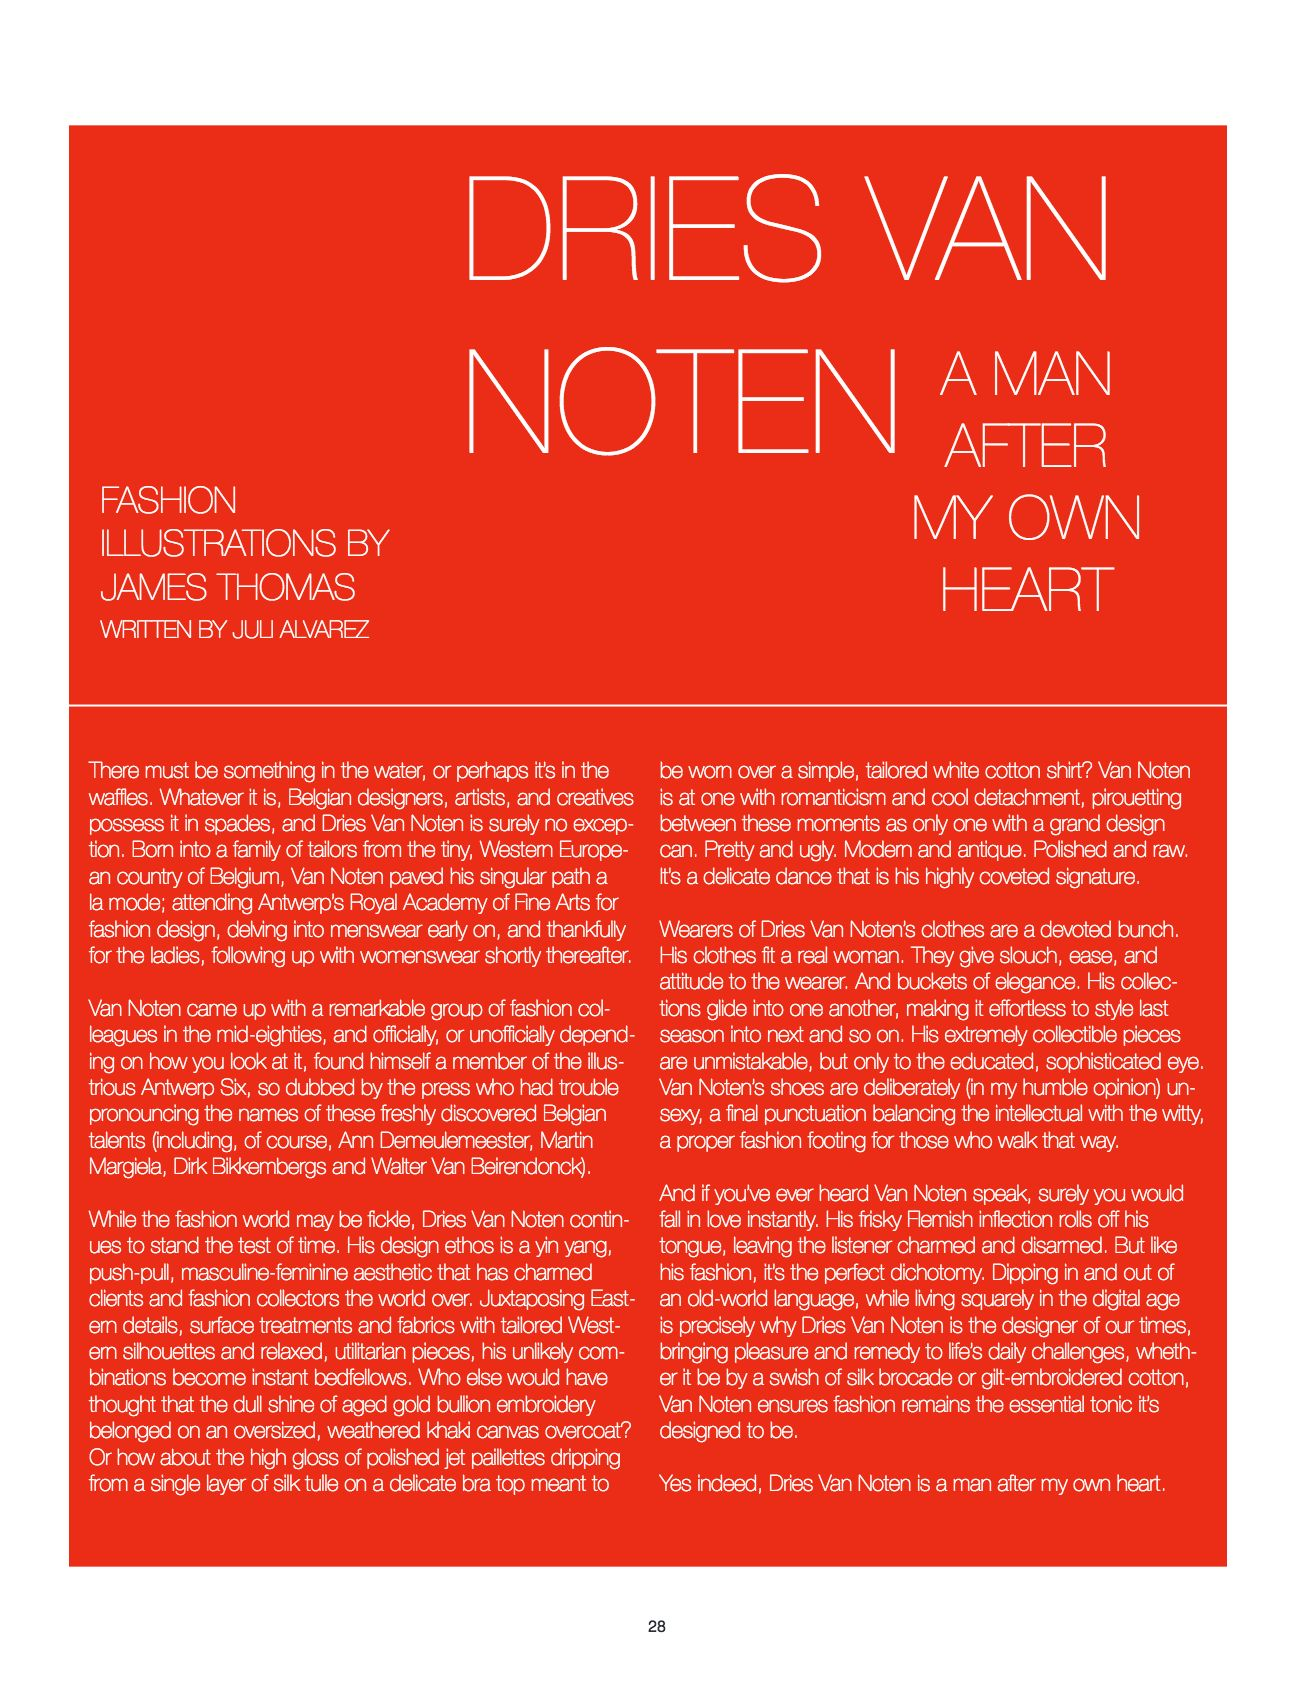 dries van noten feature / amazing magazine